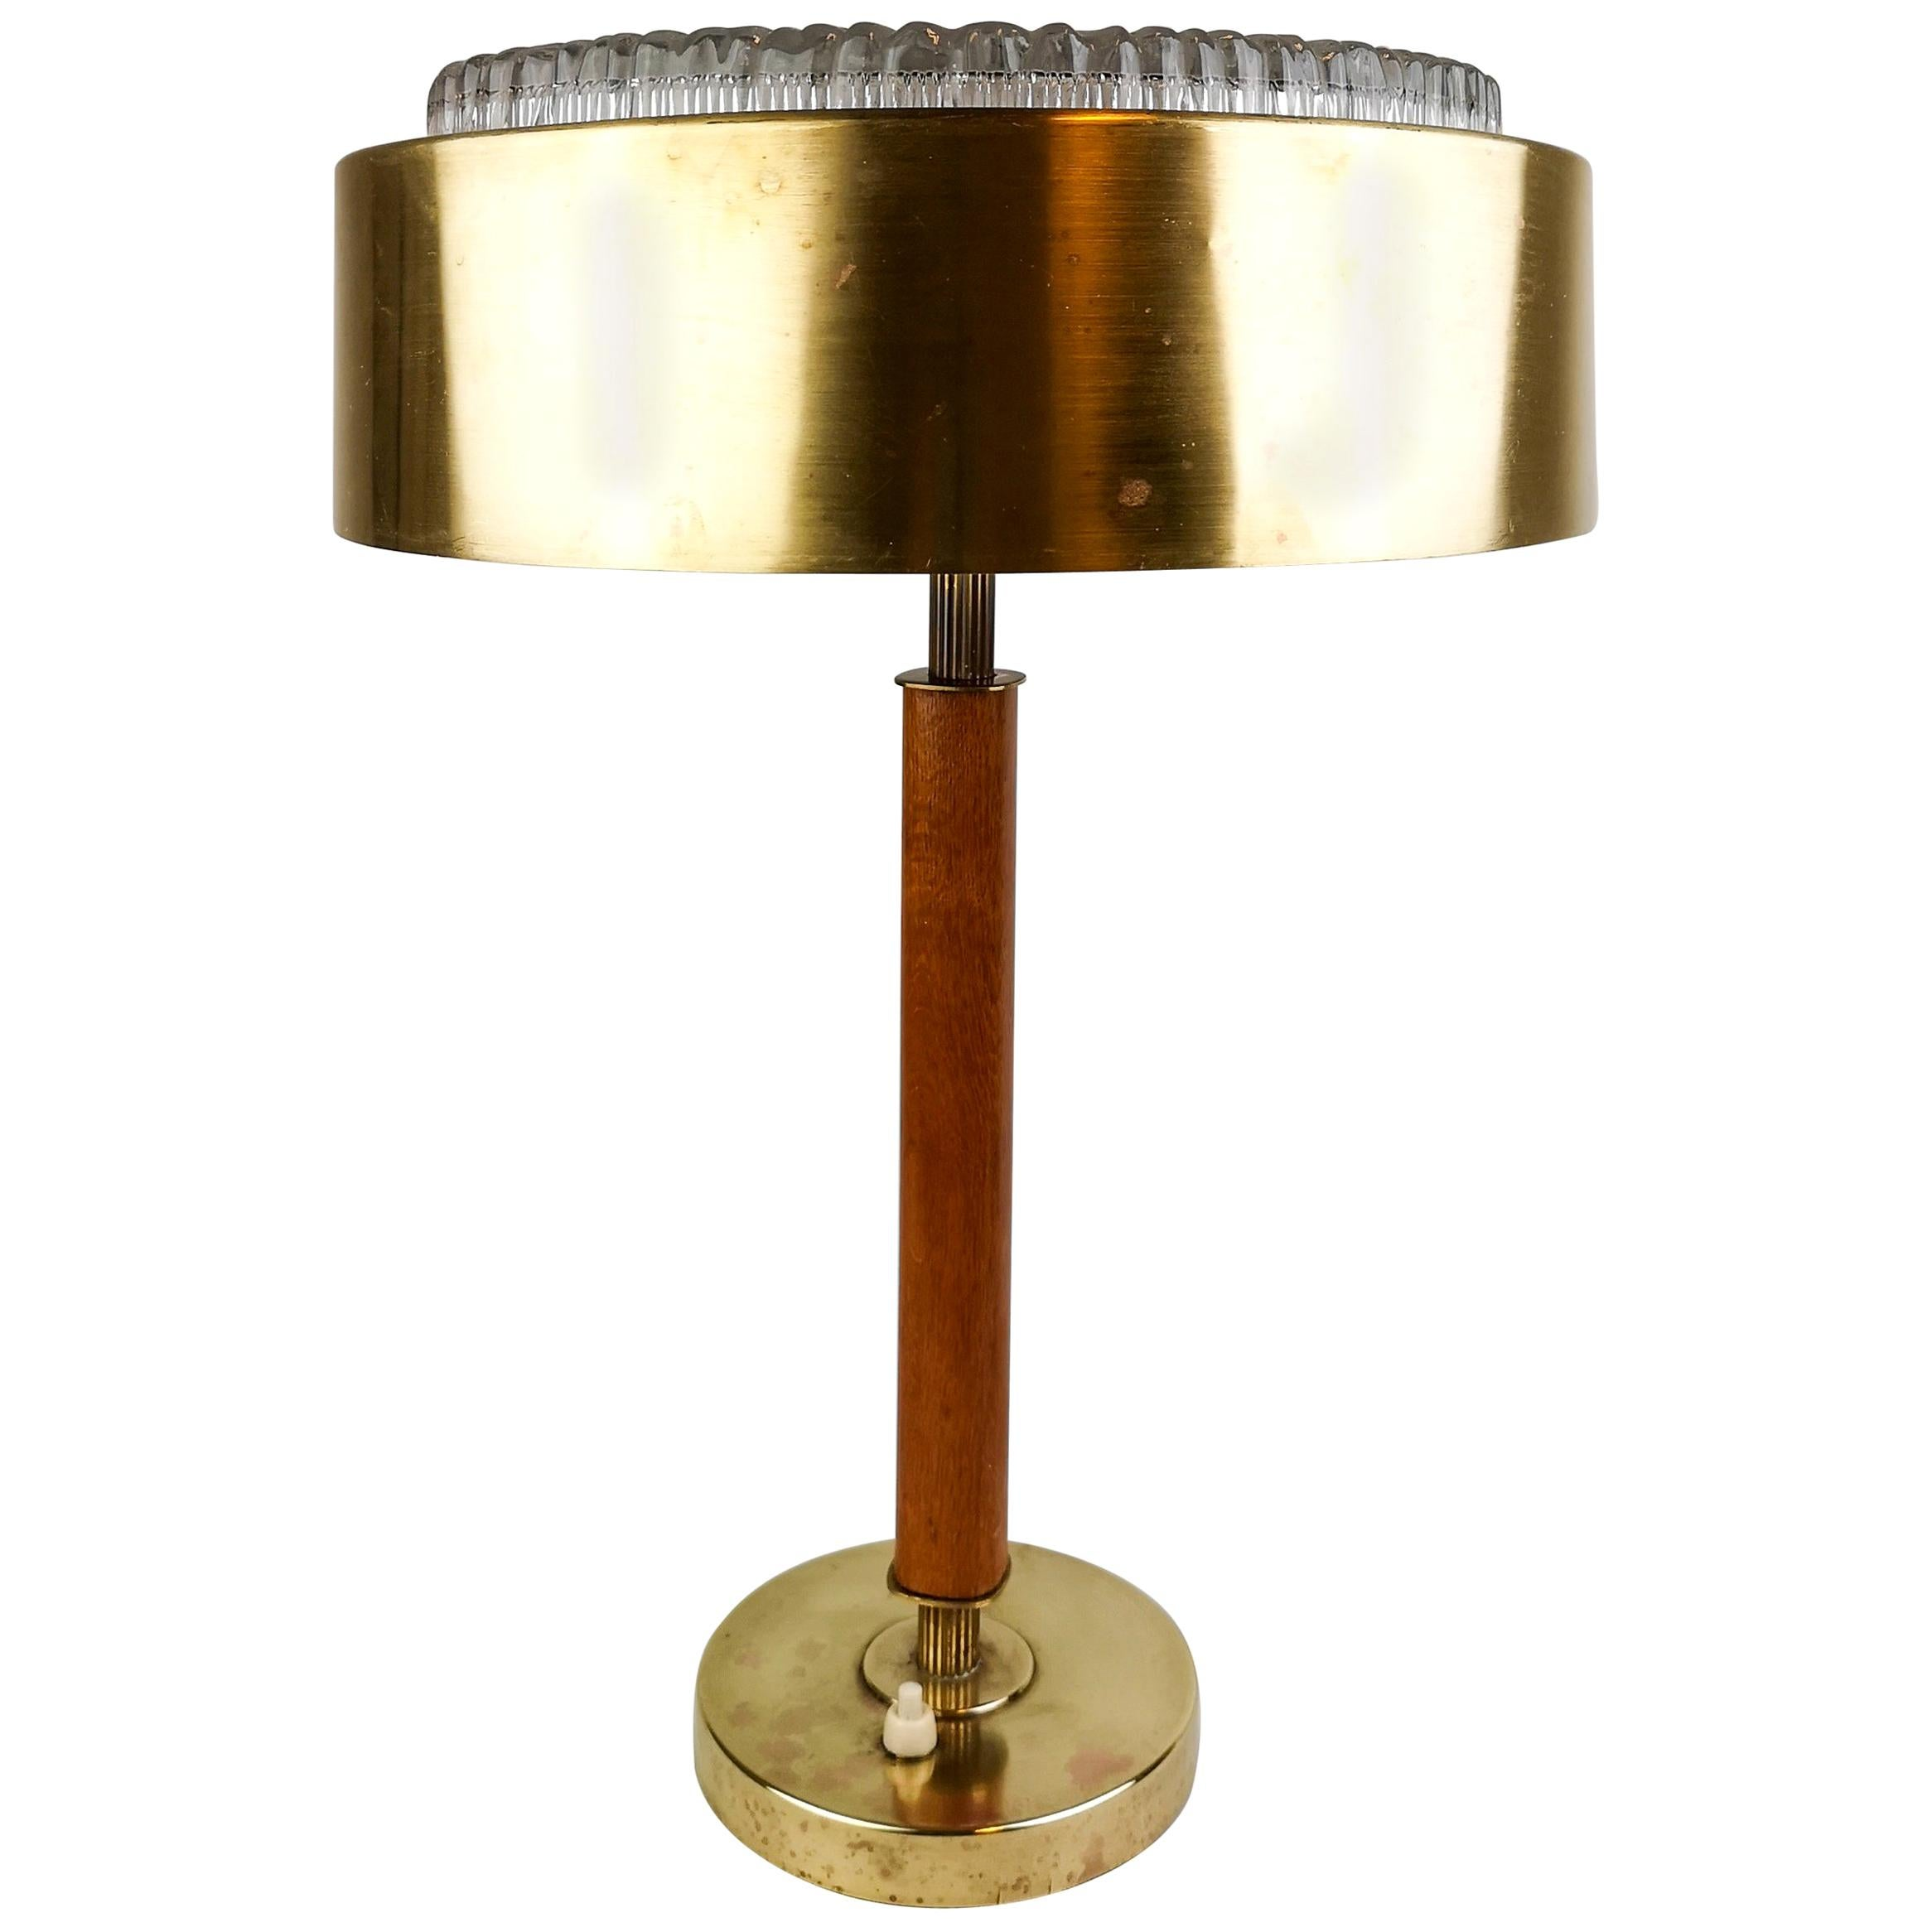 Swedish Midcentury Table Lamp in Brass, Crystal and Wood by Boréns